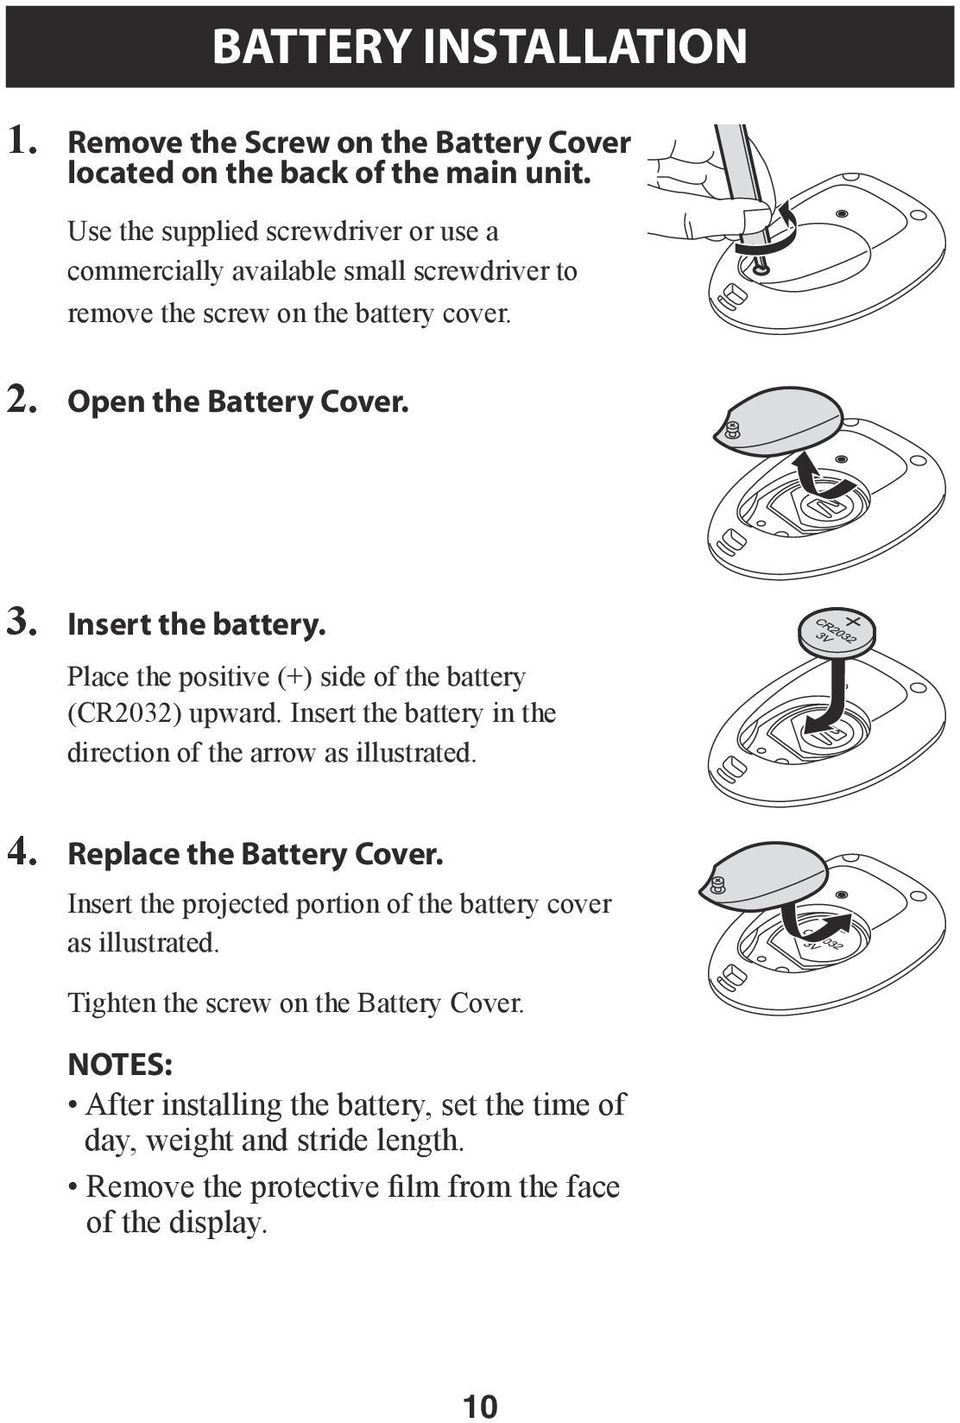 Place the positive (+) side of the battery (CR2032) upward. Insert the battery in the direction of the arrow as illustrated. 4. Replace the Battery Cover.